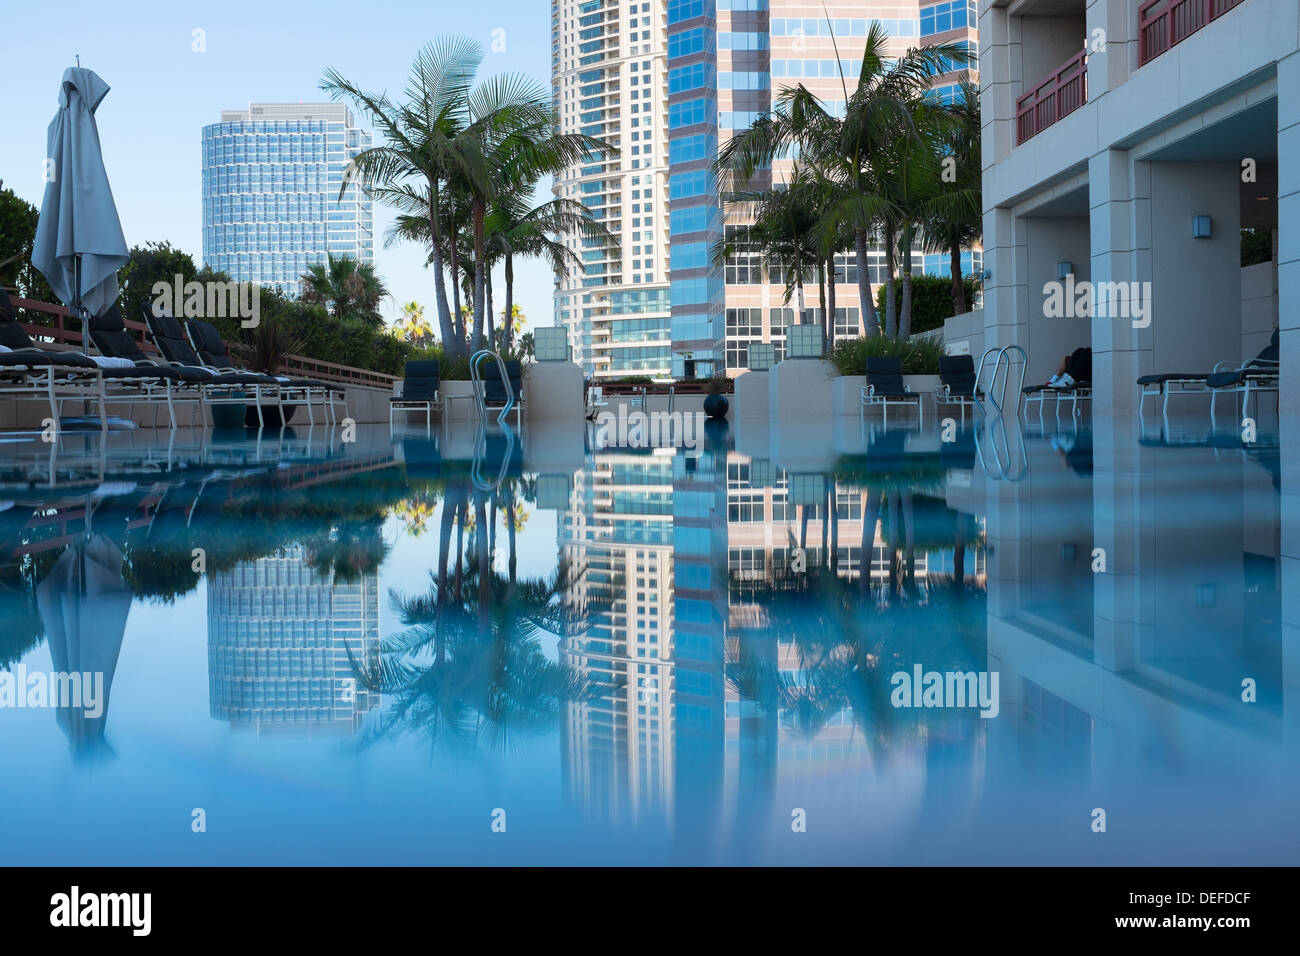 Pool of the Hotel Intercontinental, Century City, Los Angeles - Stock Image